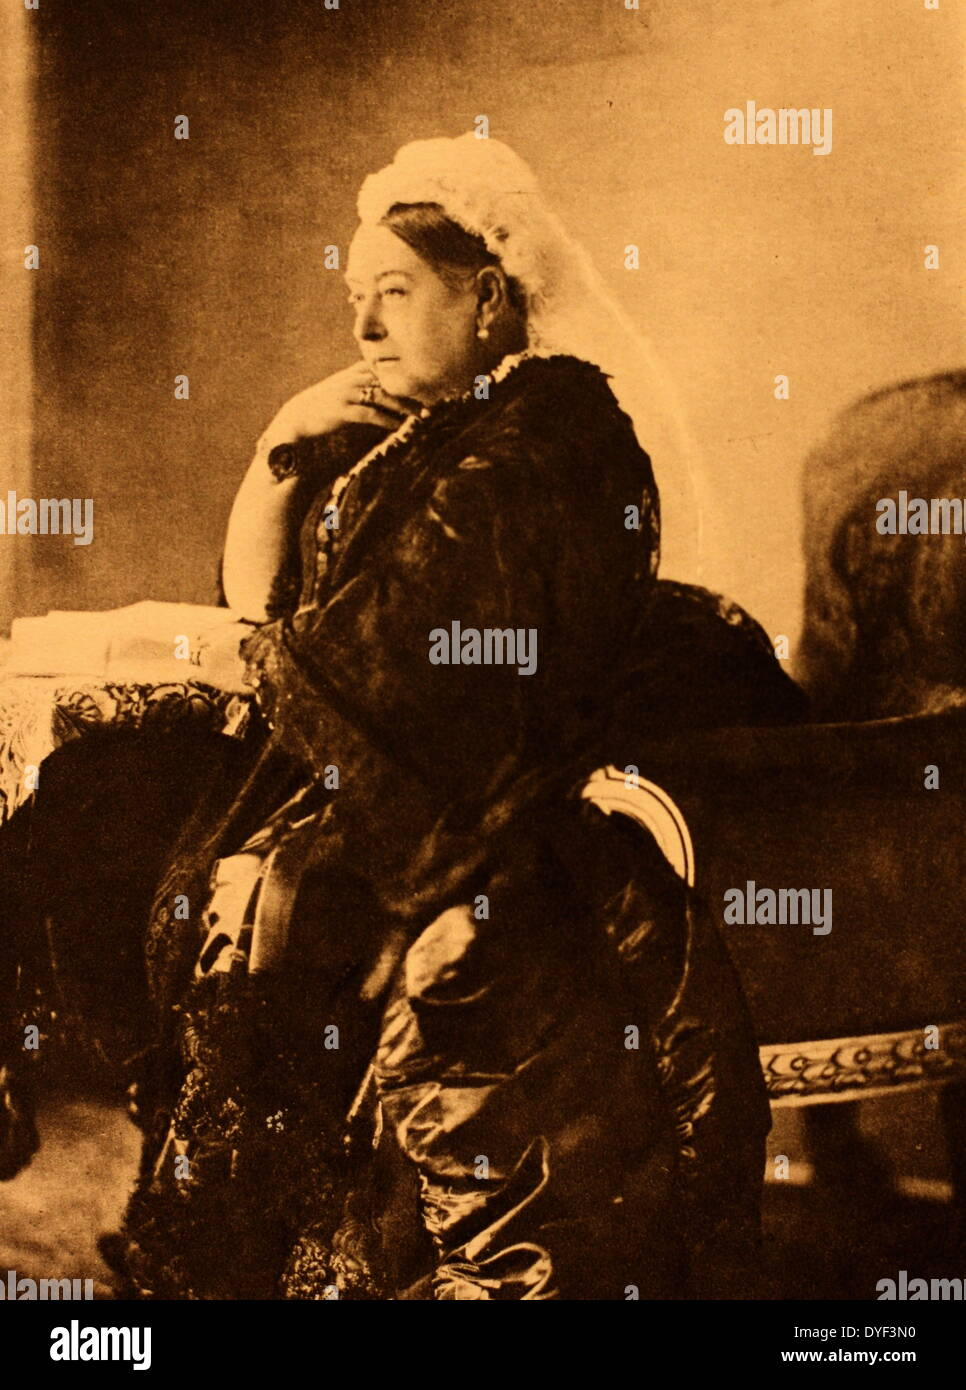 A portrait photograph of Queen Victoria. - Stock Image